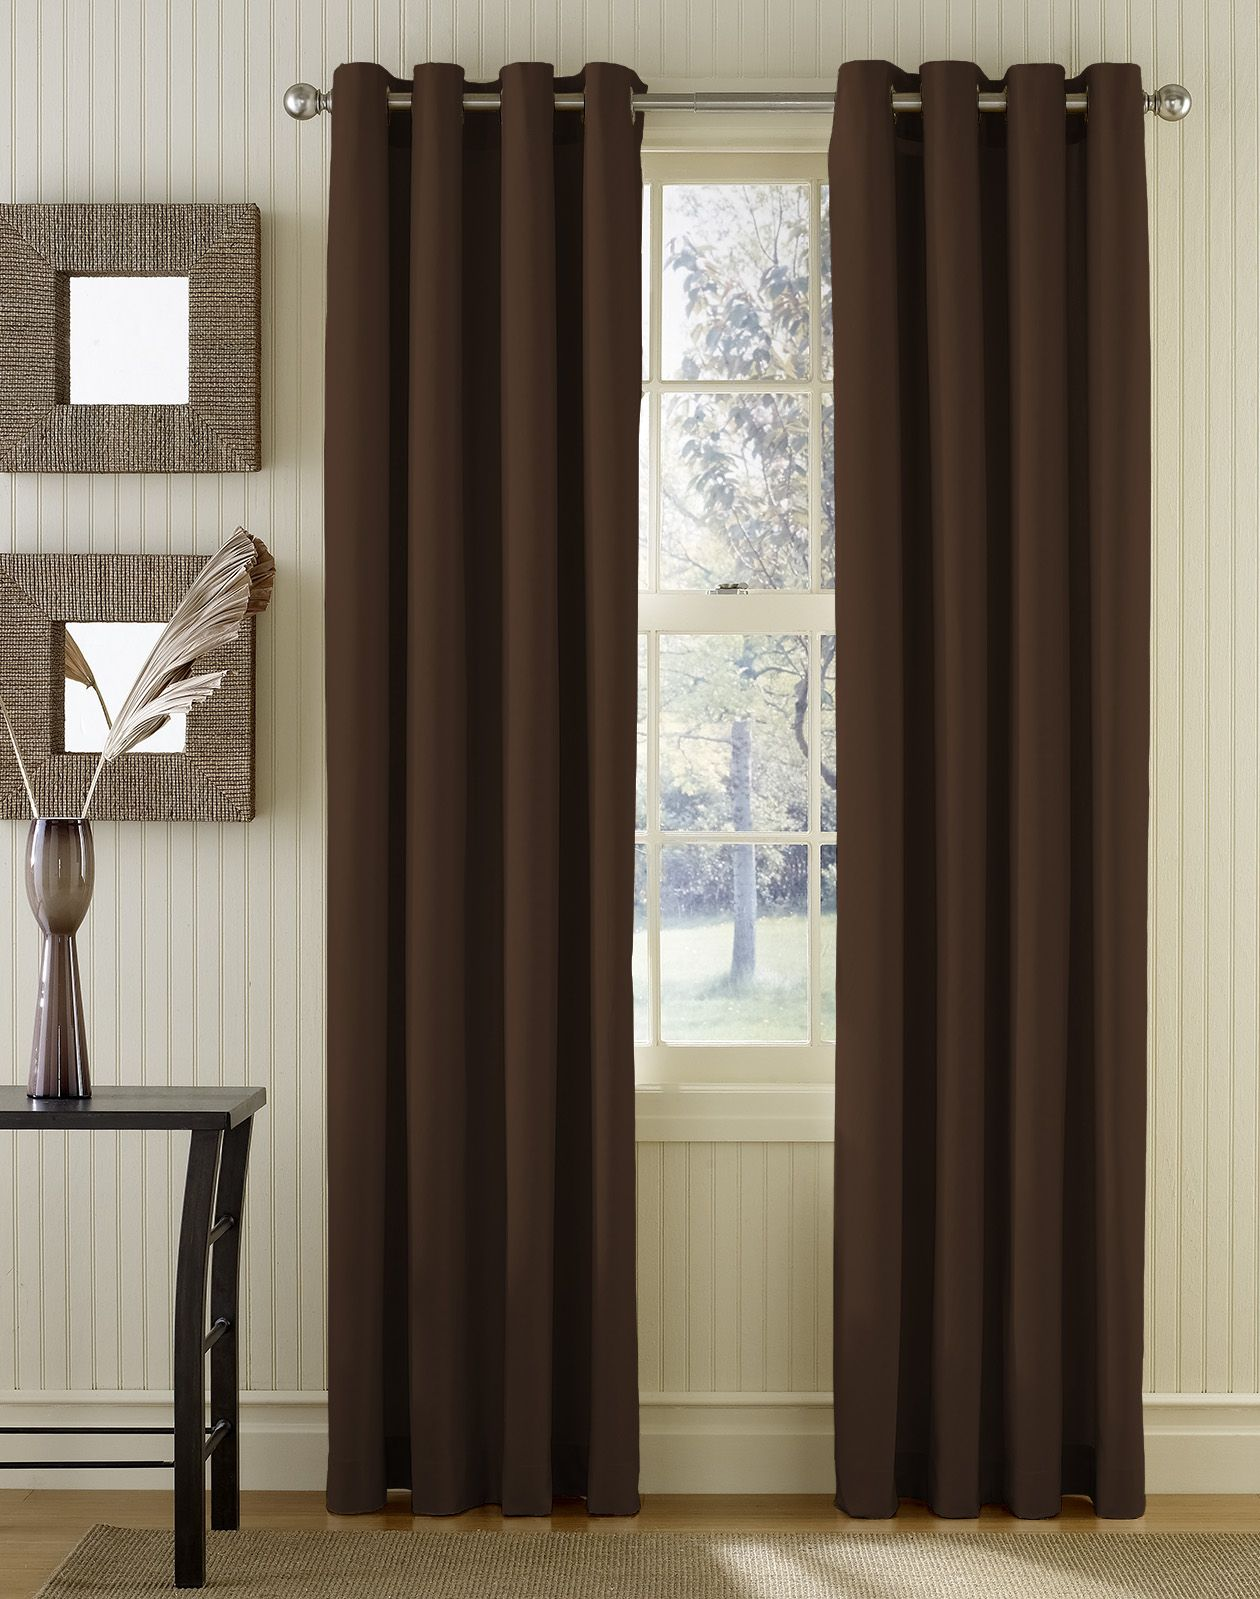 Grommet panel curtains are typically attached to the for Window panel design